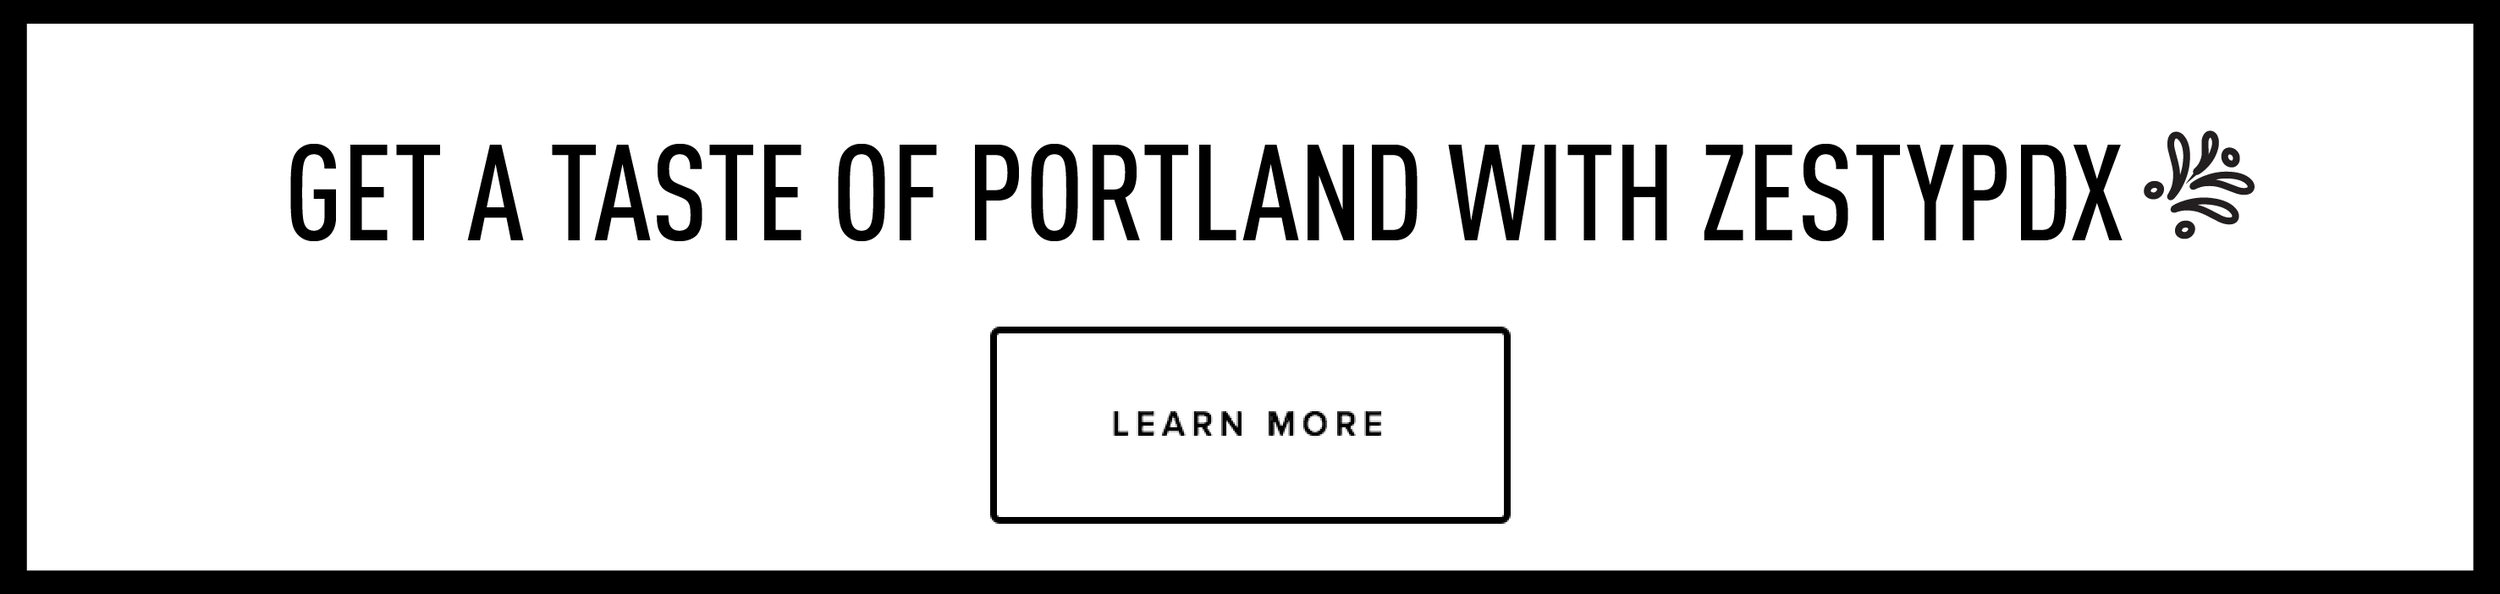 Get a Taste of Portland with ZestyPDX Food Tours : Portland Food Tours : PDX Food Tours : Portland OR Food Tours : Things to do in Portland